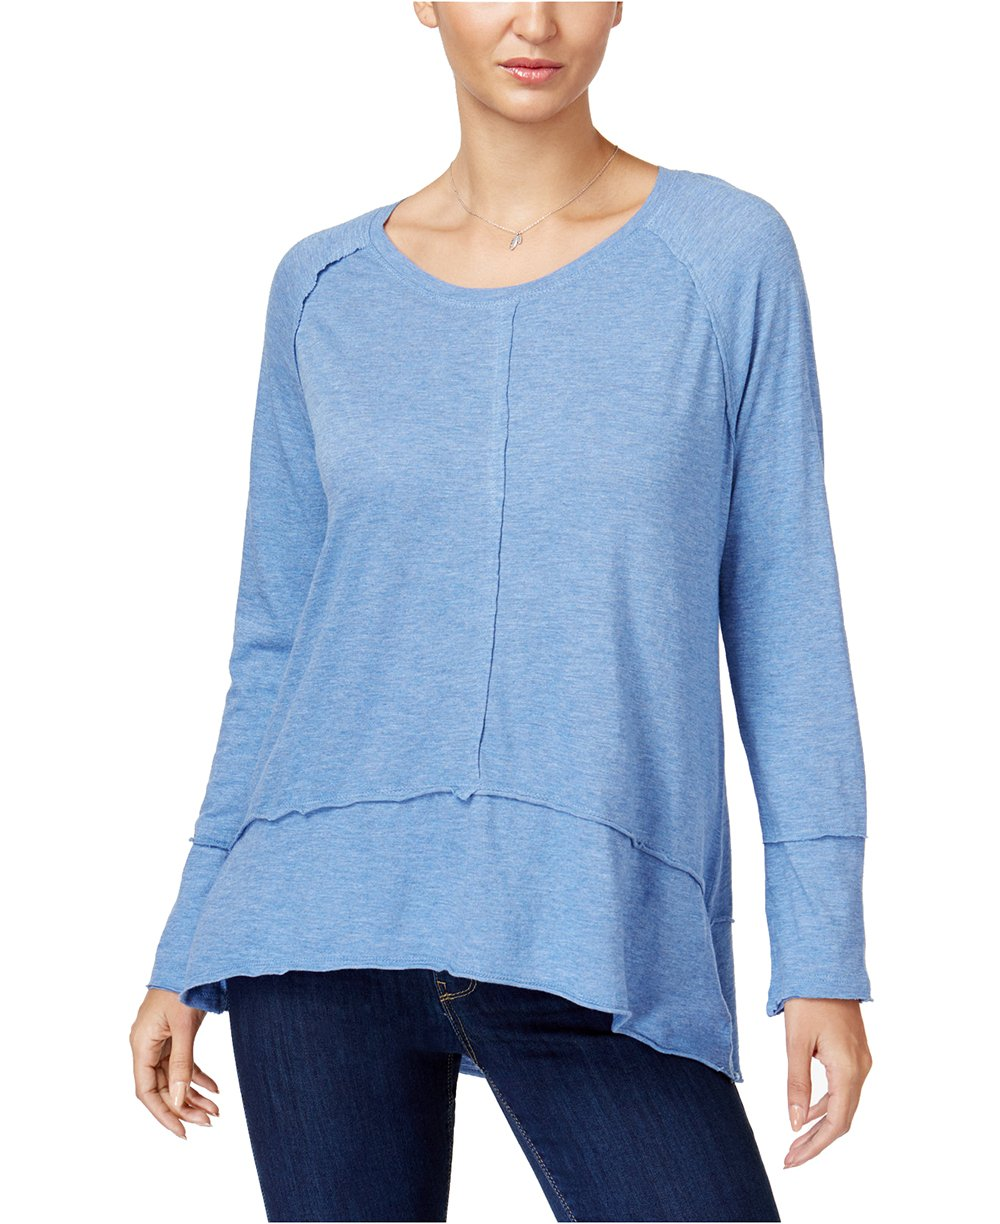 Style & Co.. Women's Cotton High-Low Top (Carbon Blue Heather, Small)